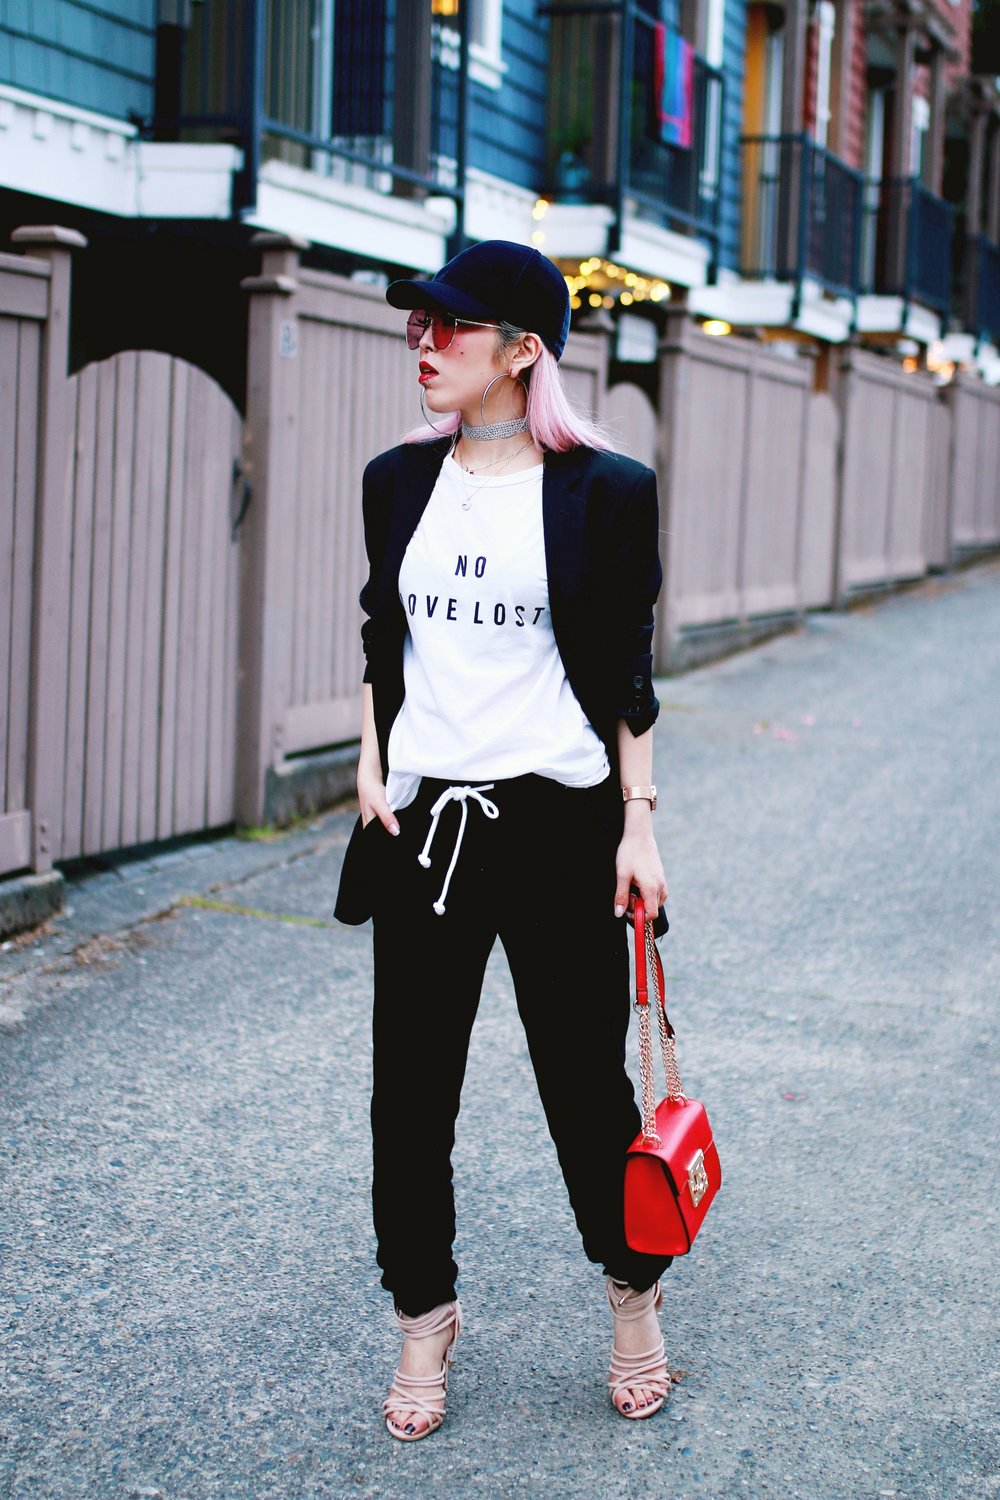 H&M Baseball Cap_Shop Sincerely Jules No LOVE LOST Tee_H&M Sweatpants_YSL Boyfriend Blazer_Zara Choker_Forever 21 Hoop Earrings_Mellow World Red Bag_Charlotte Russe Nude Sandals_L'Oreal Red Lipstick_Aikas Love Closet_Seattle Fashion Style Blogger_Pink Hair 3